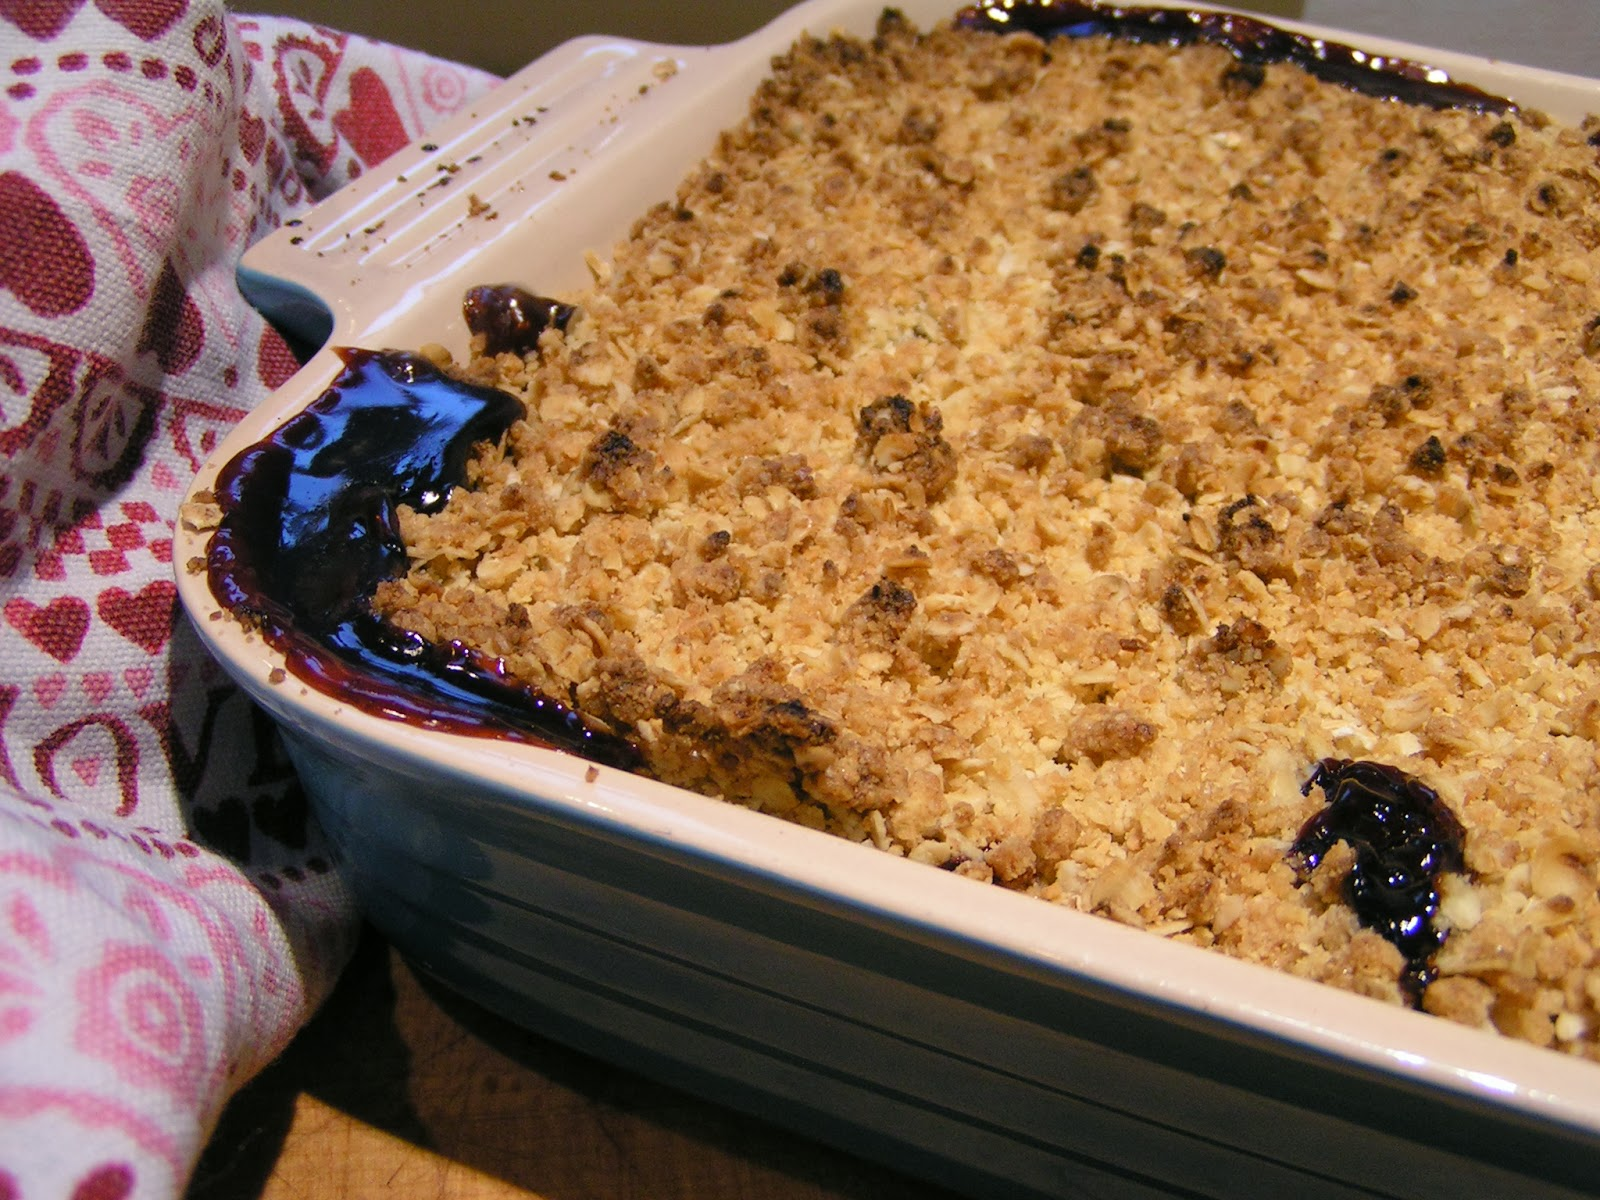 The 8th pint, a dead freezer, and cherry & almond crumble